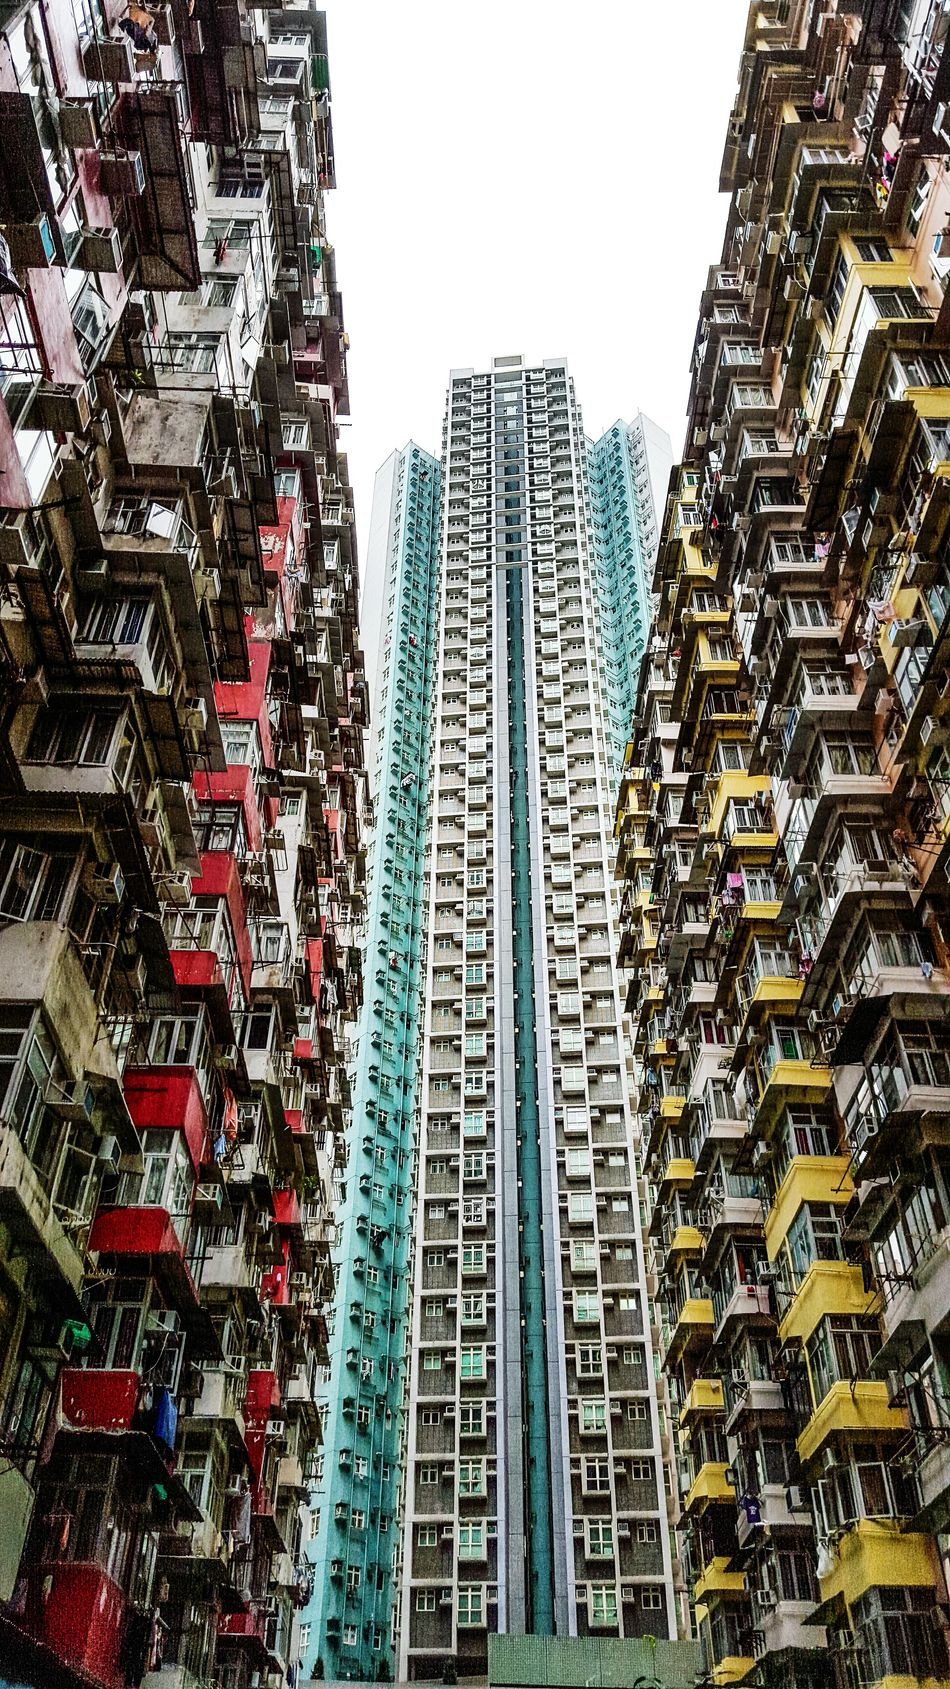 YFB 2/3The Architect - 2016 EyeEm Awards Check This Out Hello World From My Point Of View EyeEm China Urban Landscape Architecture_collection Architecture Building Tower Buildings Eye4photography  On The Road City View  Urbanphotography Urban Geometry Cityscapes Traveling Travel Hong Kong Urban Photography Cityscape Urban Jungle Yick Fat Building Battle Of The Cities The Street Photographer - 2016 EyeEm Awards